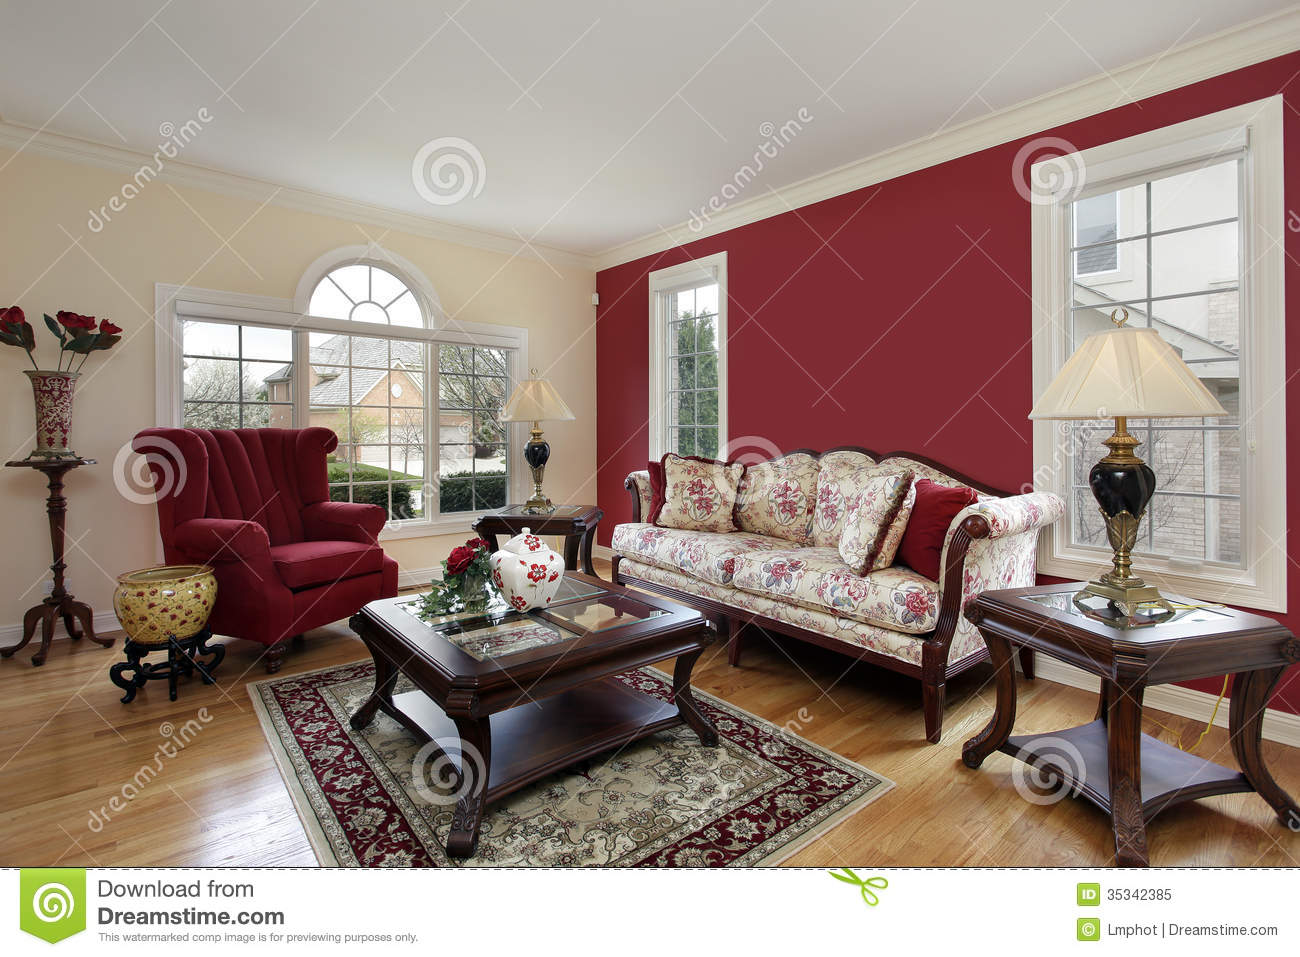 Living Room With Red And Cream Colored Walls Stock Image